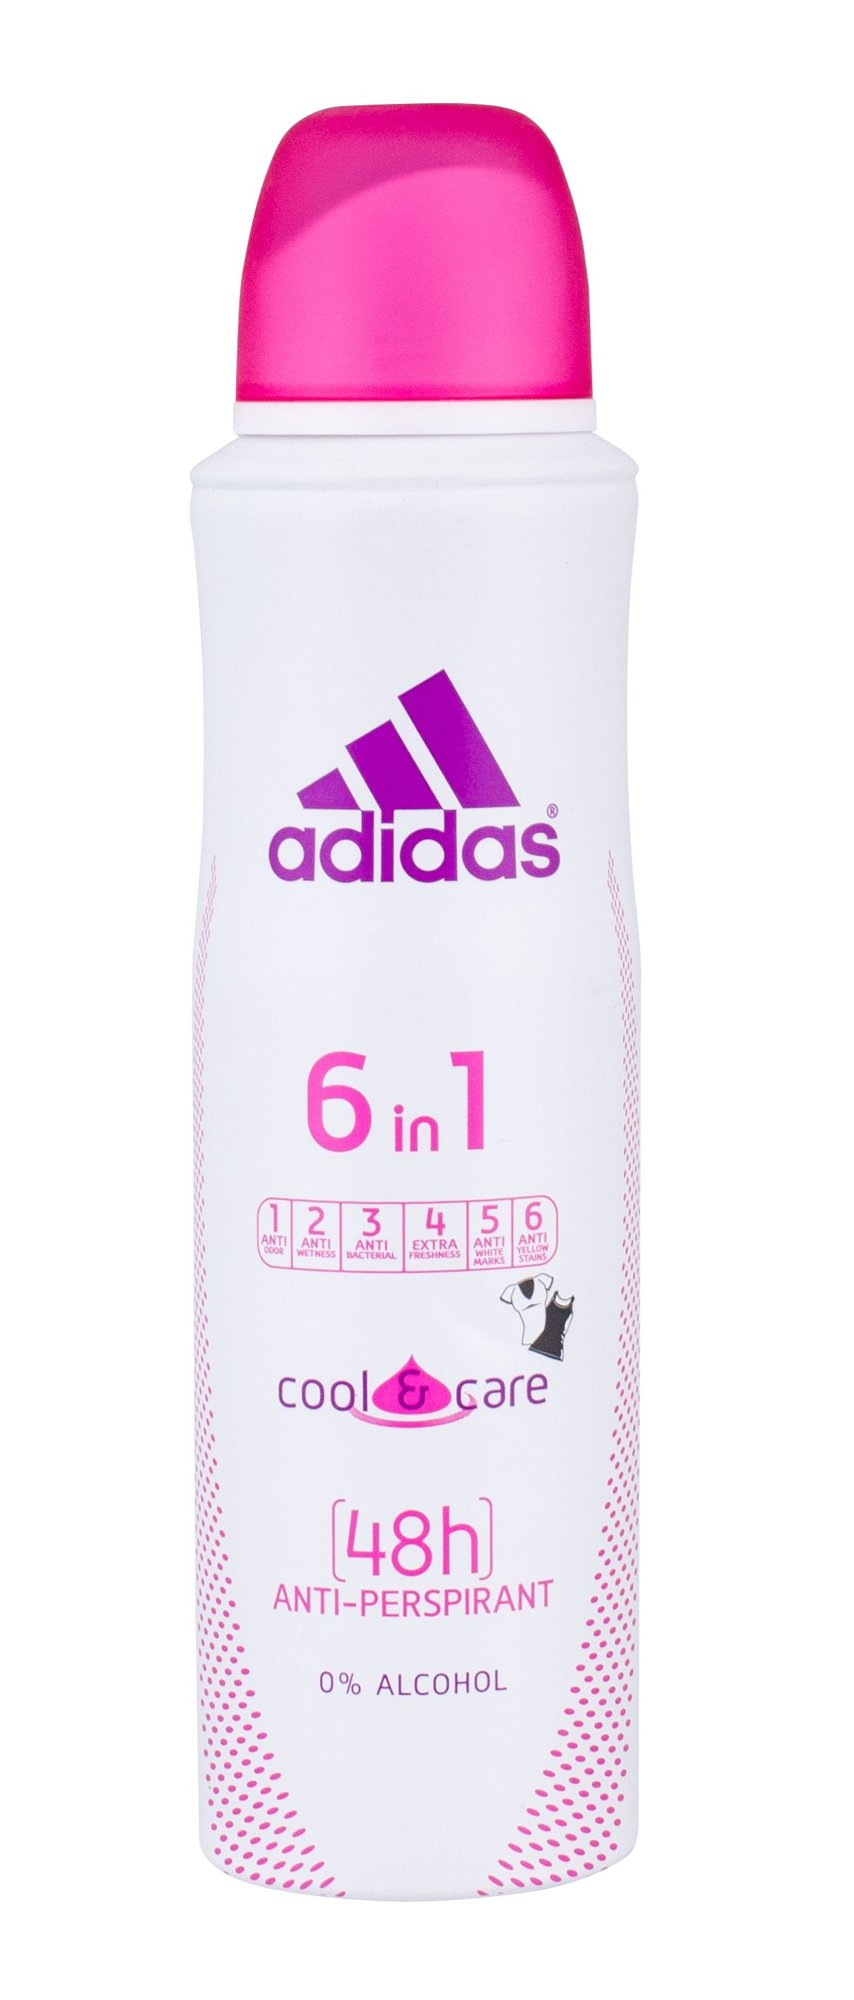 Adidas 6in1 Antiperspirant 150ml